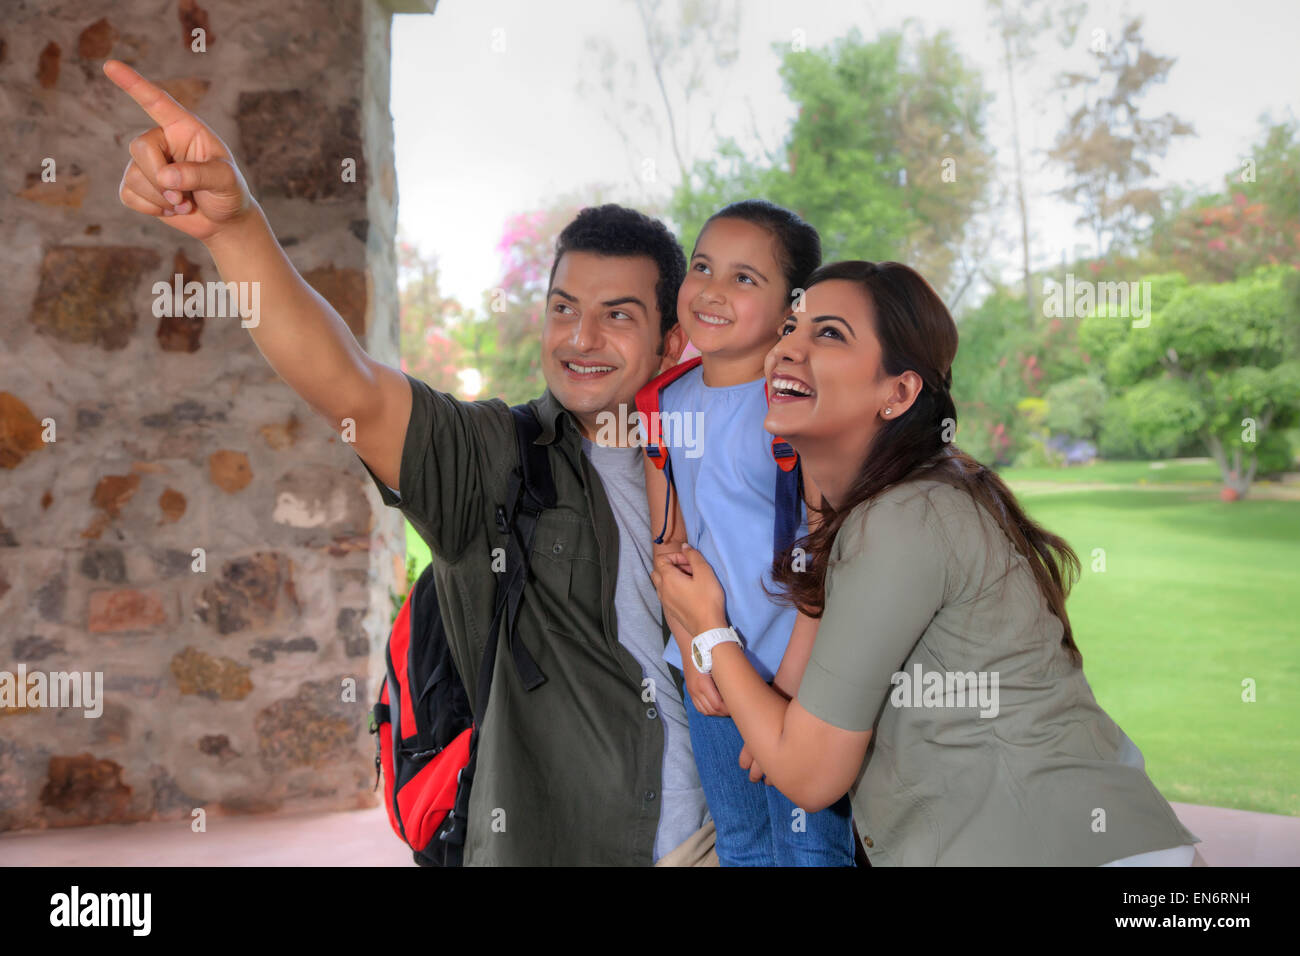 Woman pointing something out to family - Stock Image